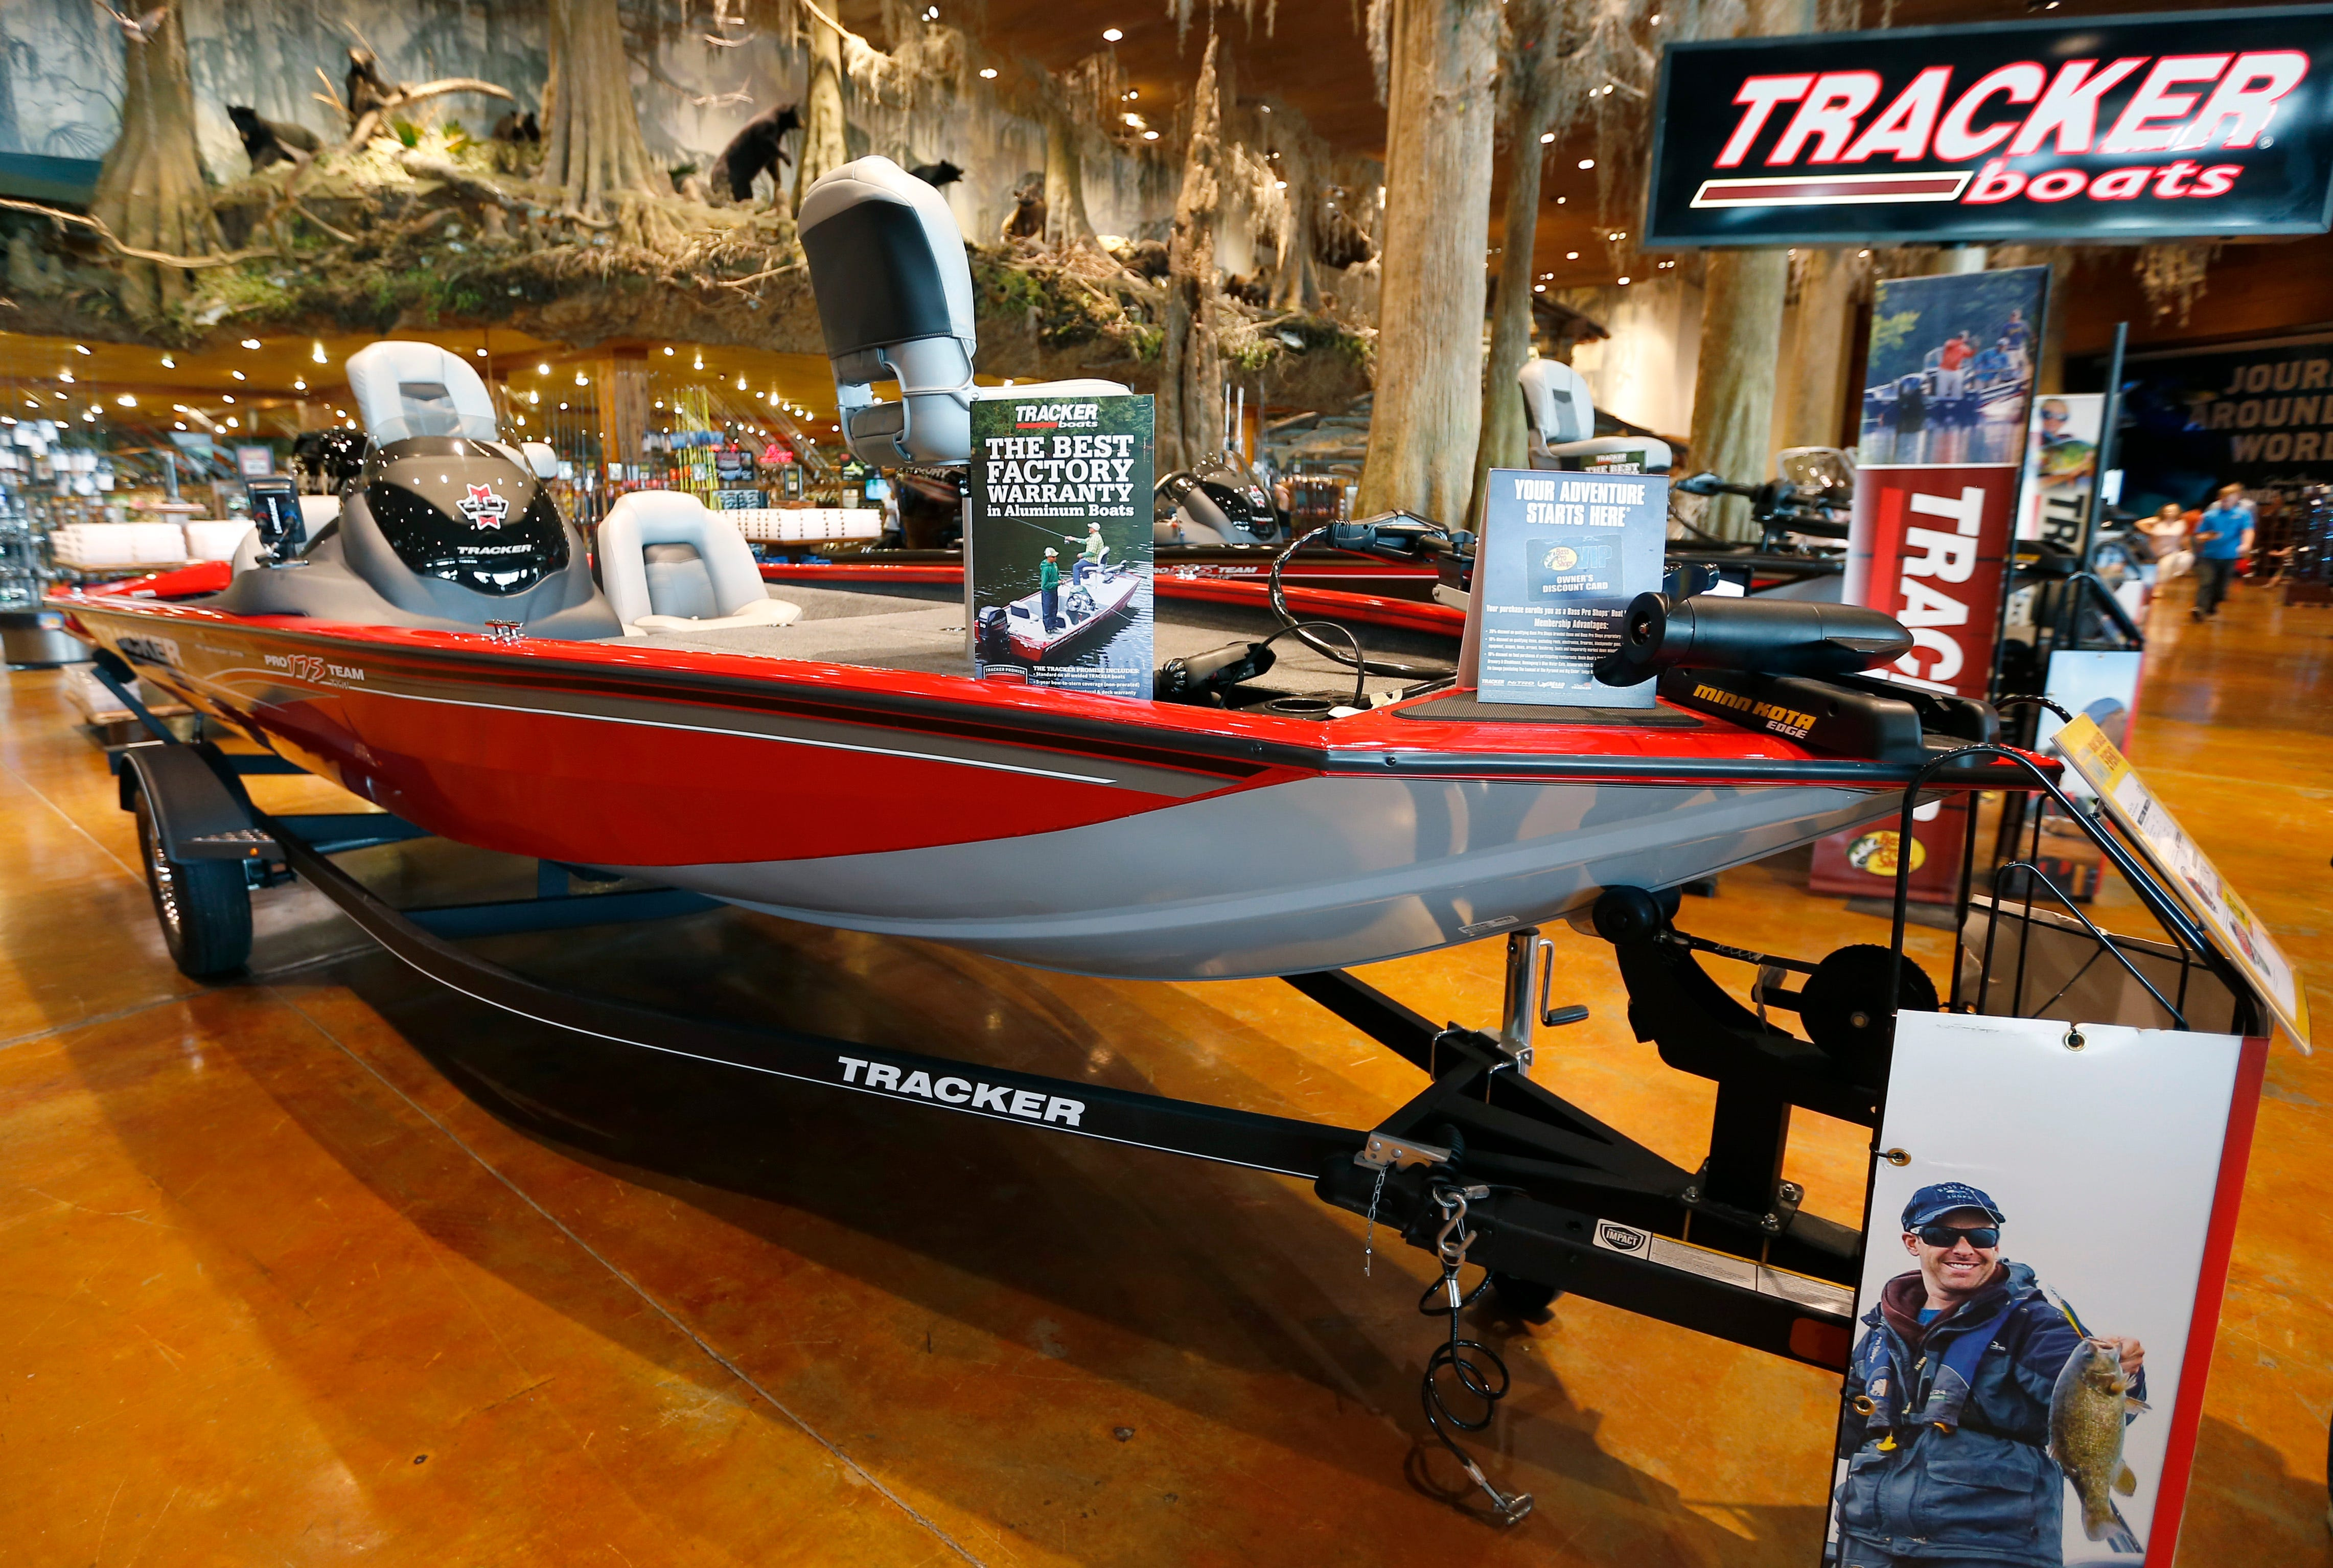 The five most popular varieties of bass boats on Ozarks waterways